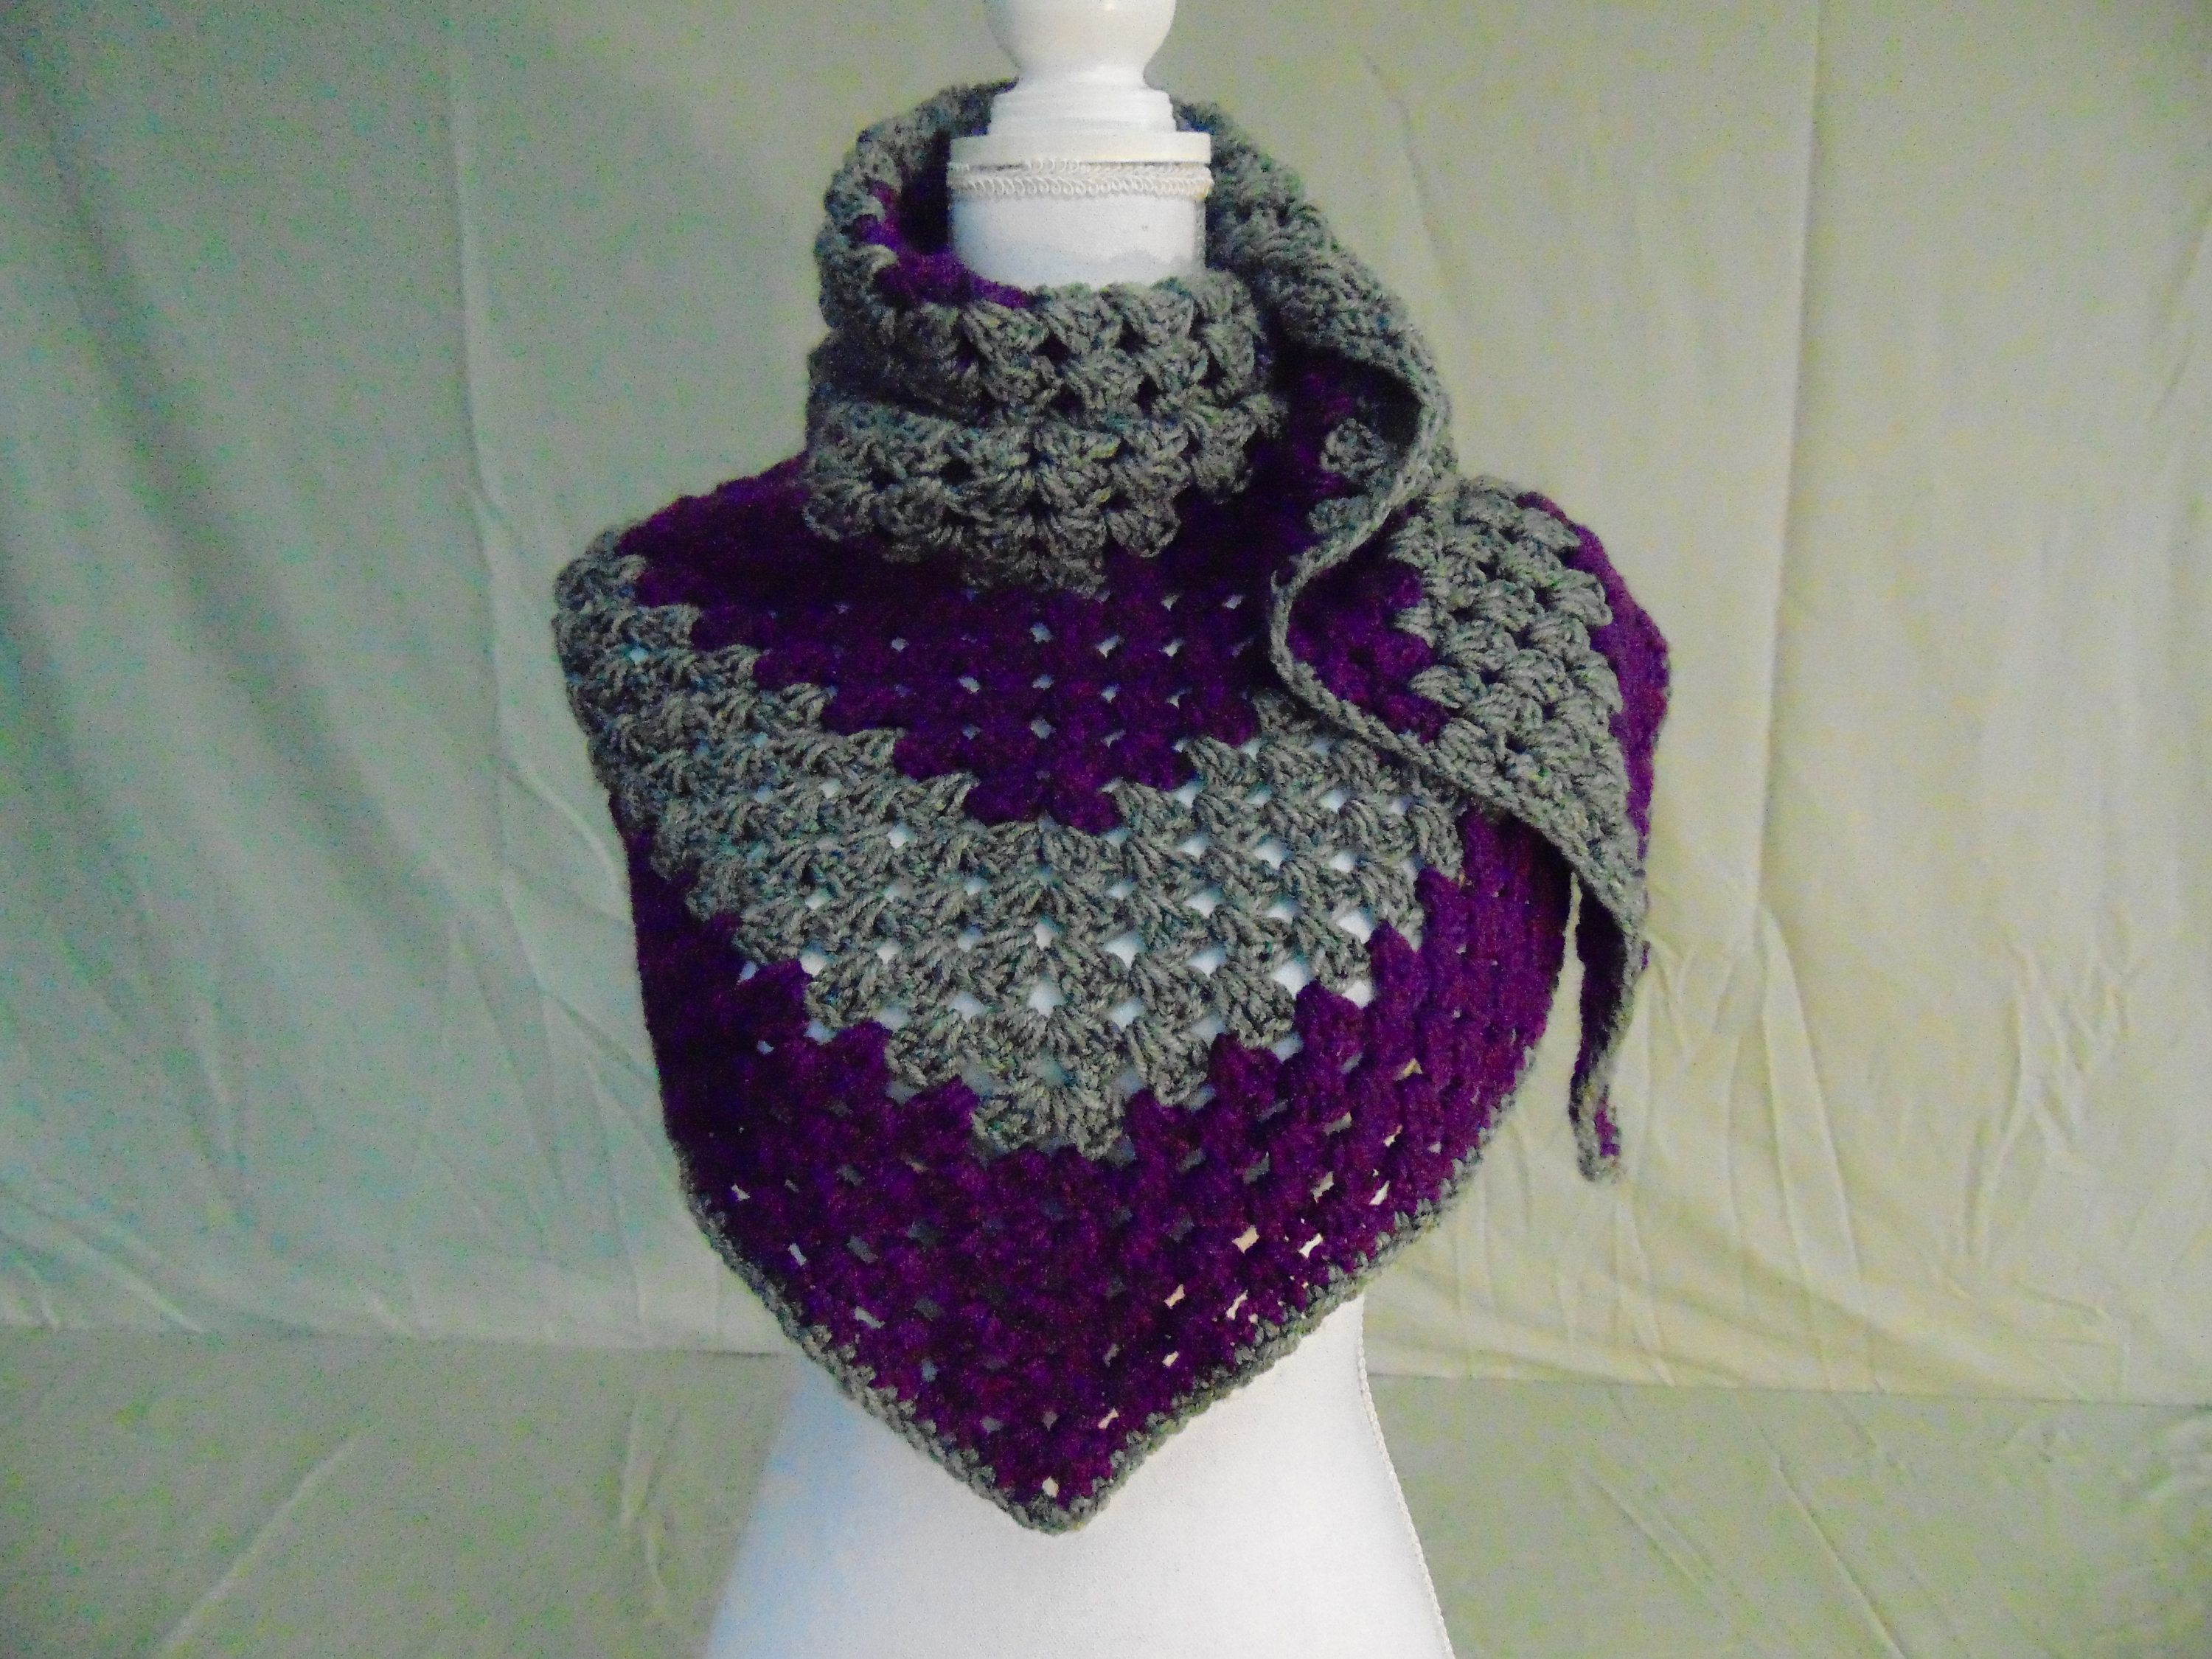 Crocheted Gift Ideas for Women-Crocheted Wrap/Cowl/Scarf ...